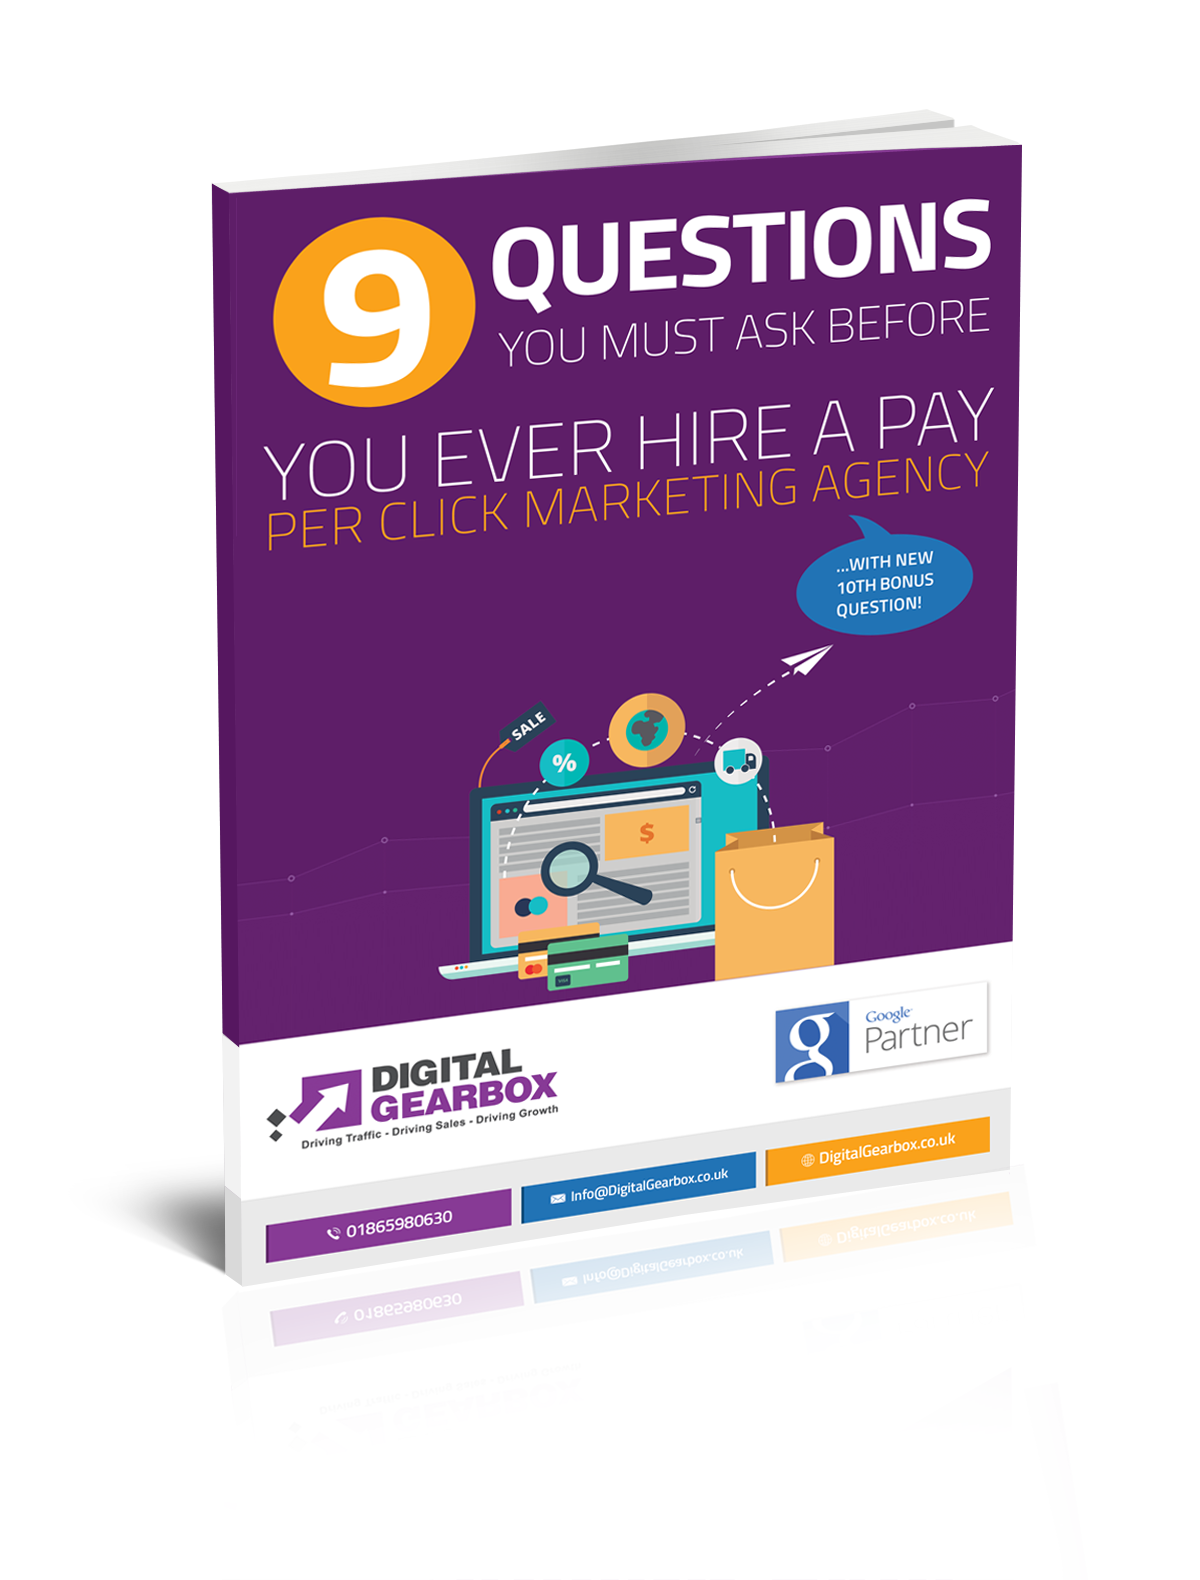 9 Questions You Must Ask Before You Ever Hire A Pay Per Click Marketing Agency eBook